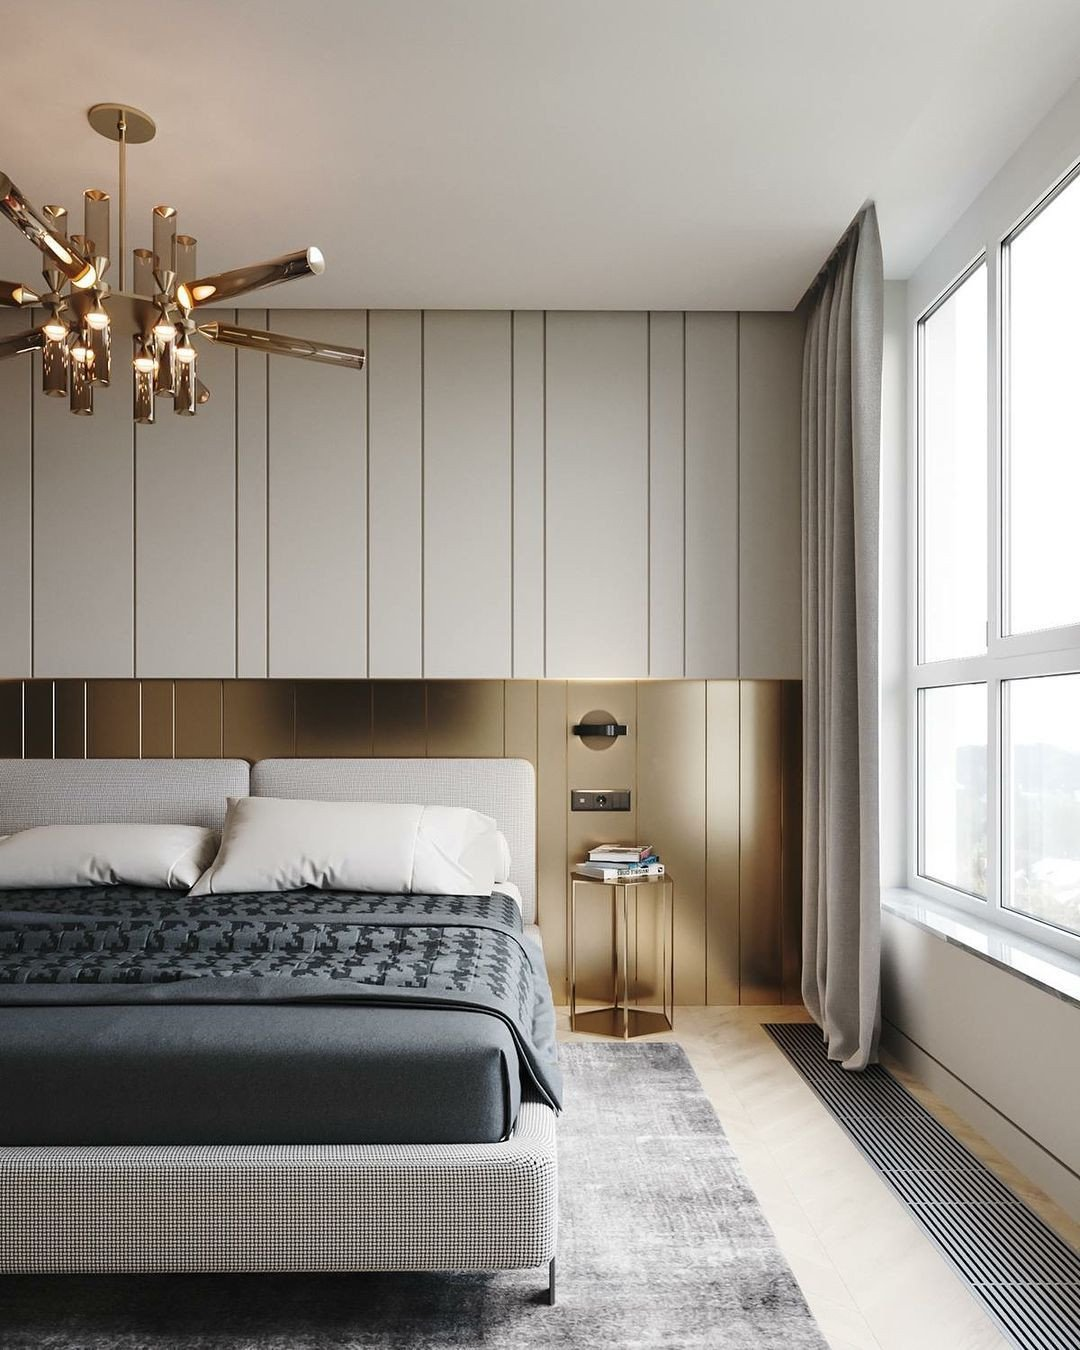 Best Lighting for Bedroom Fresh Working On A Bedroom Lighting Project Find Out the Best